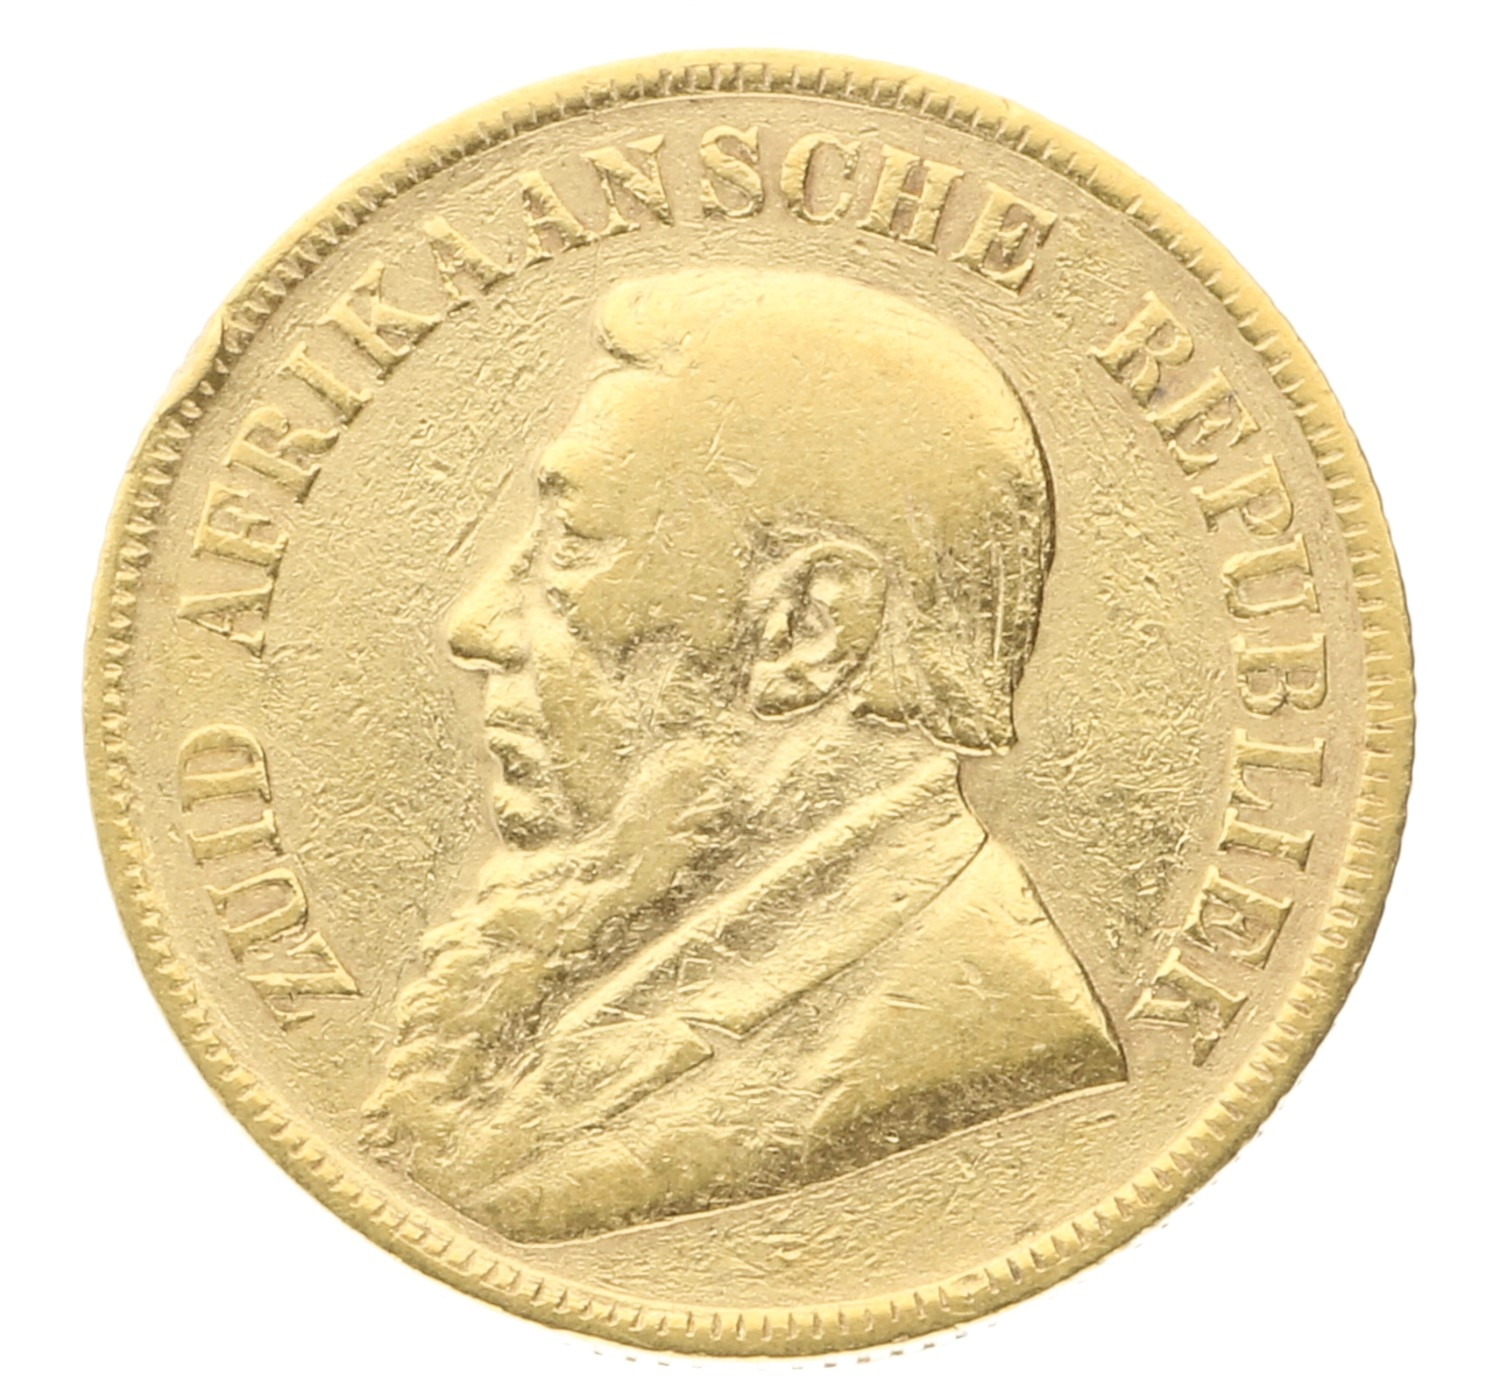 Pound - South Africa - 1897